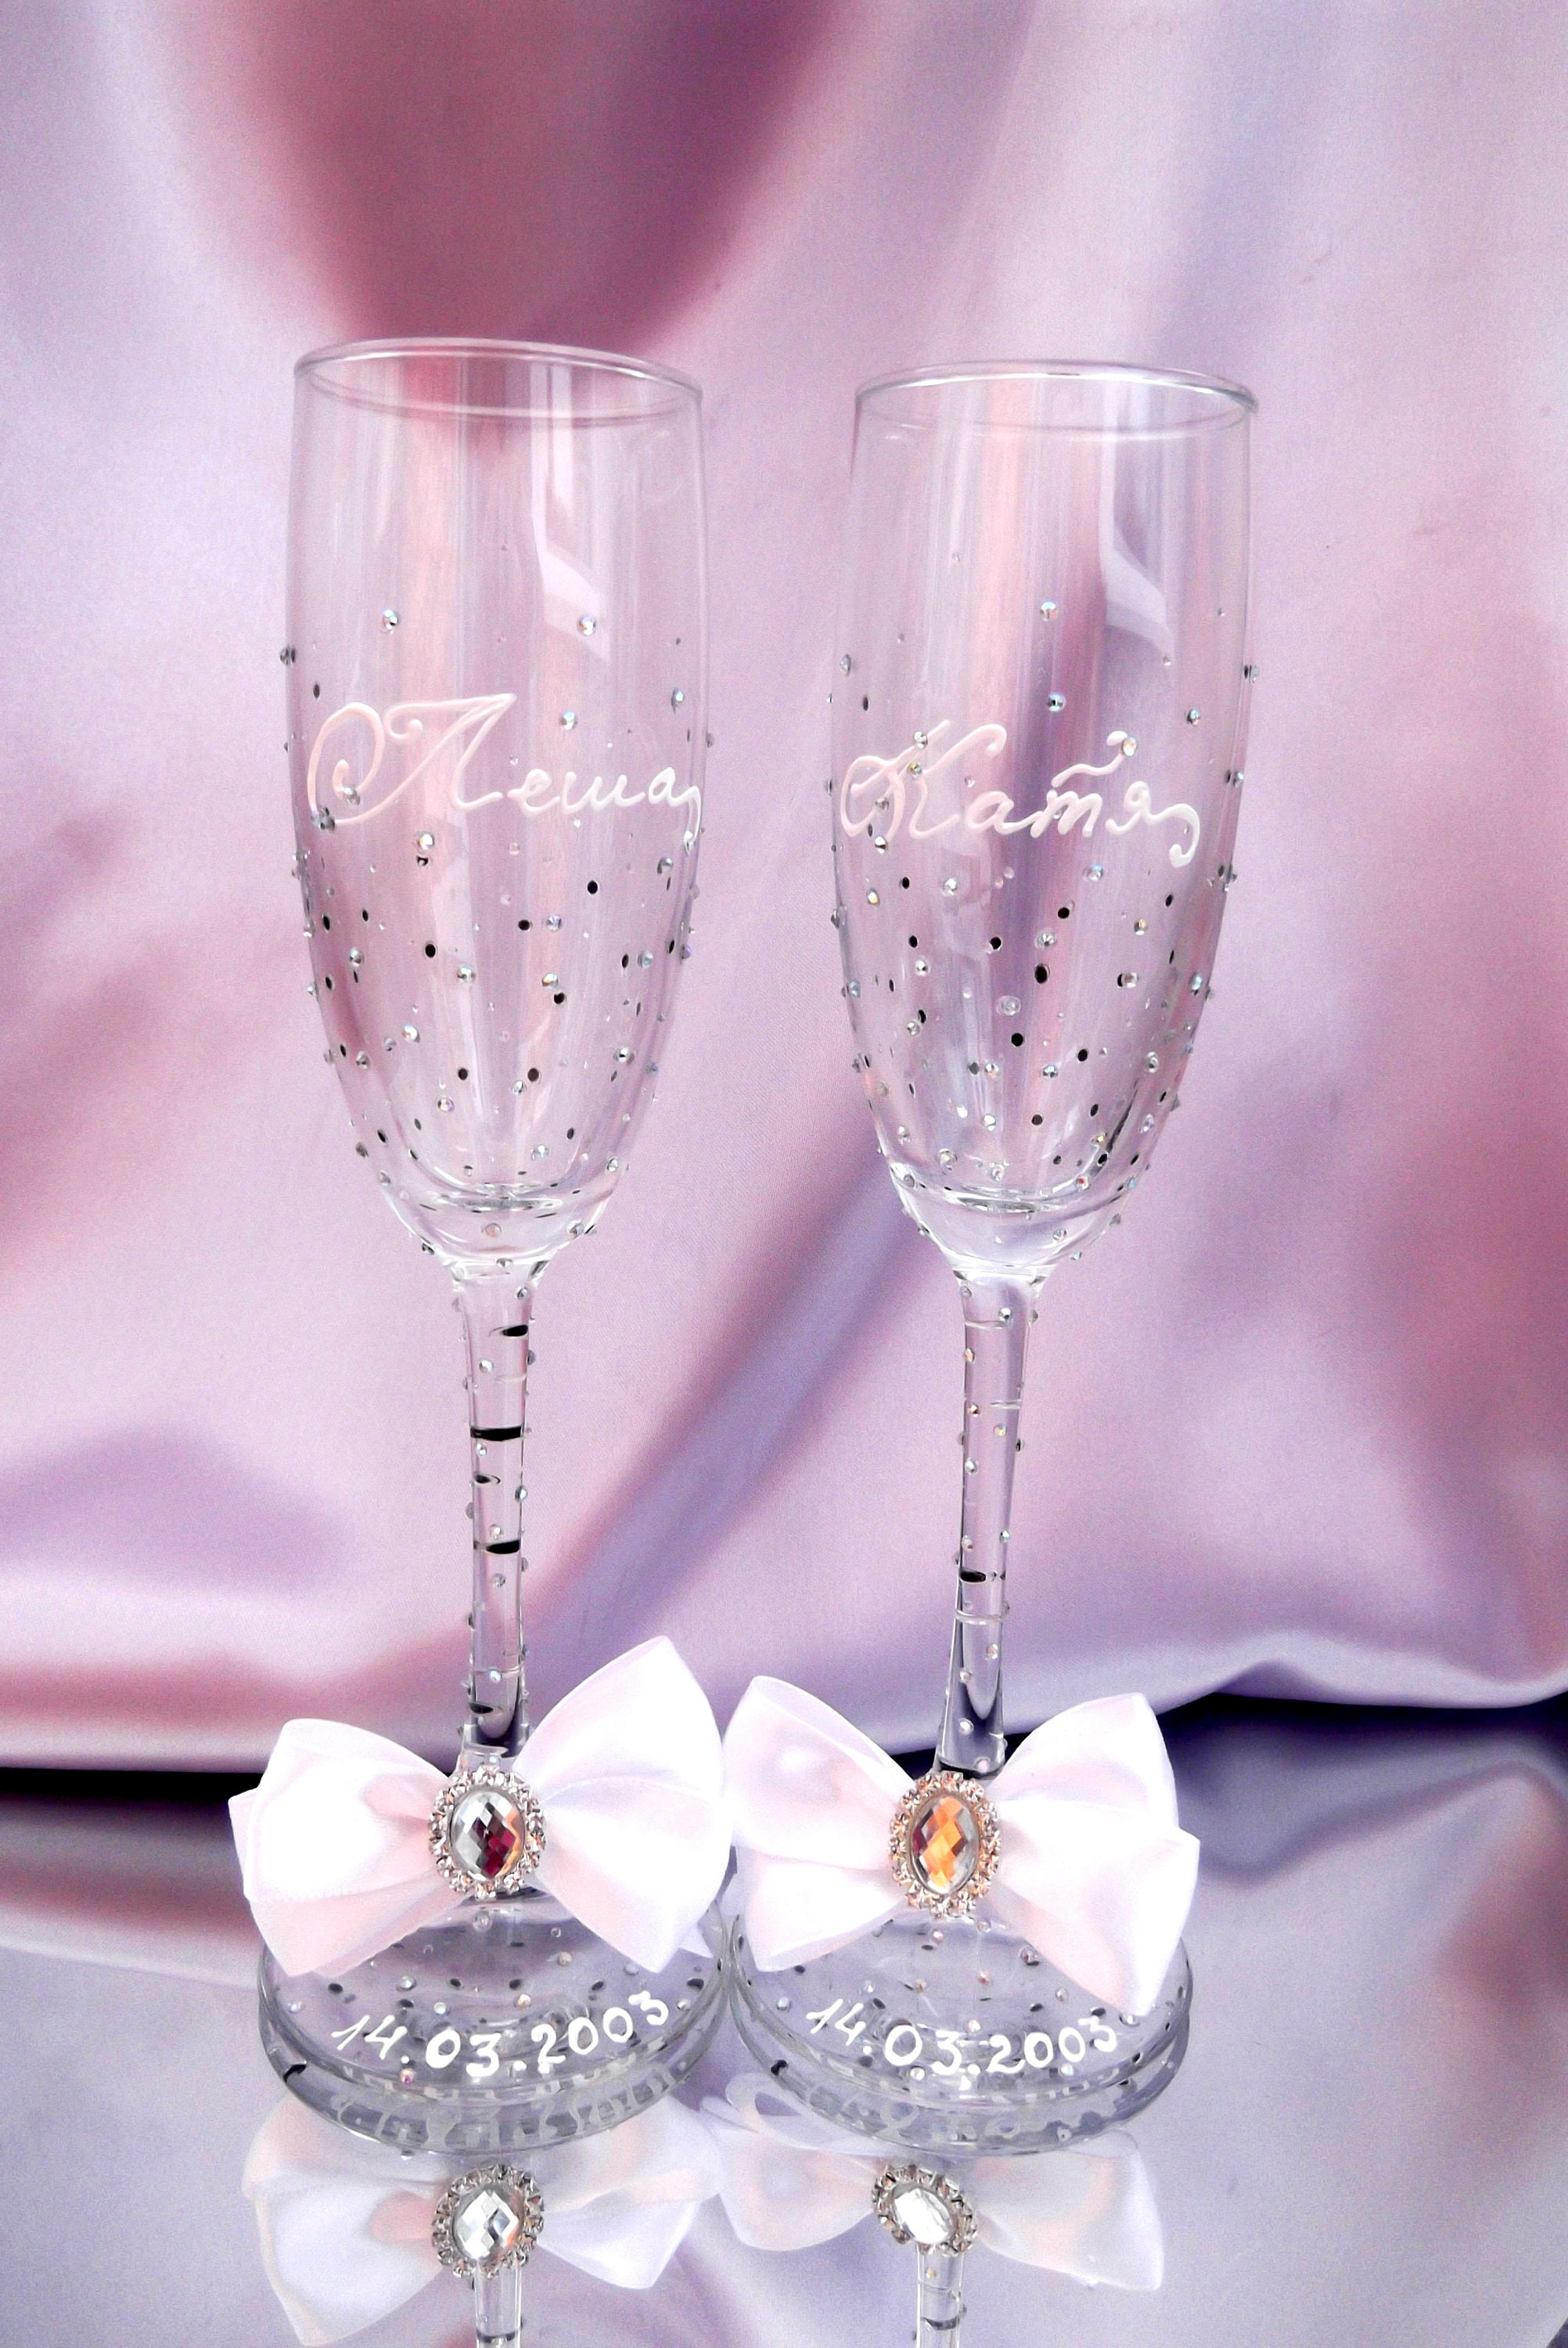 Wedding Glasses Champagne Flute Wedding Gift Personalized